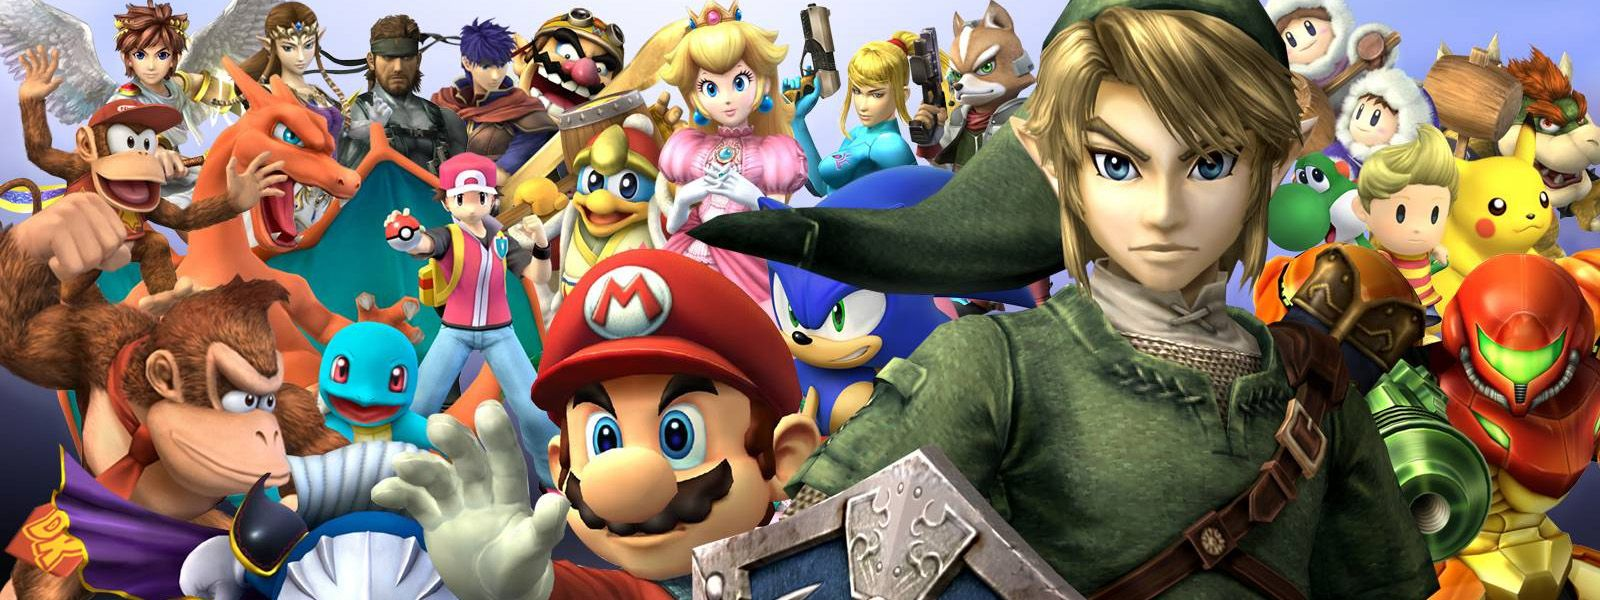 3a5657c39567cd8b4fa73beab155c4b0 - How To Get Every Character In Super Smash Bros Brawl